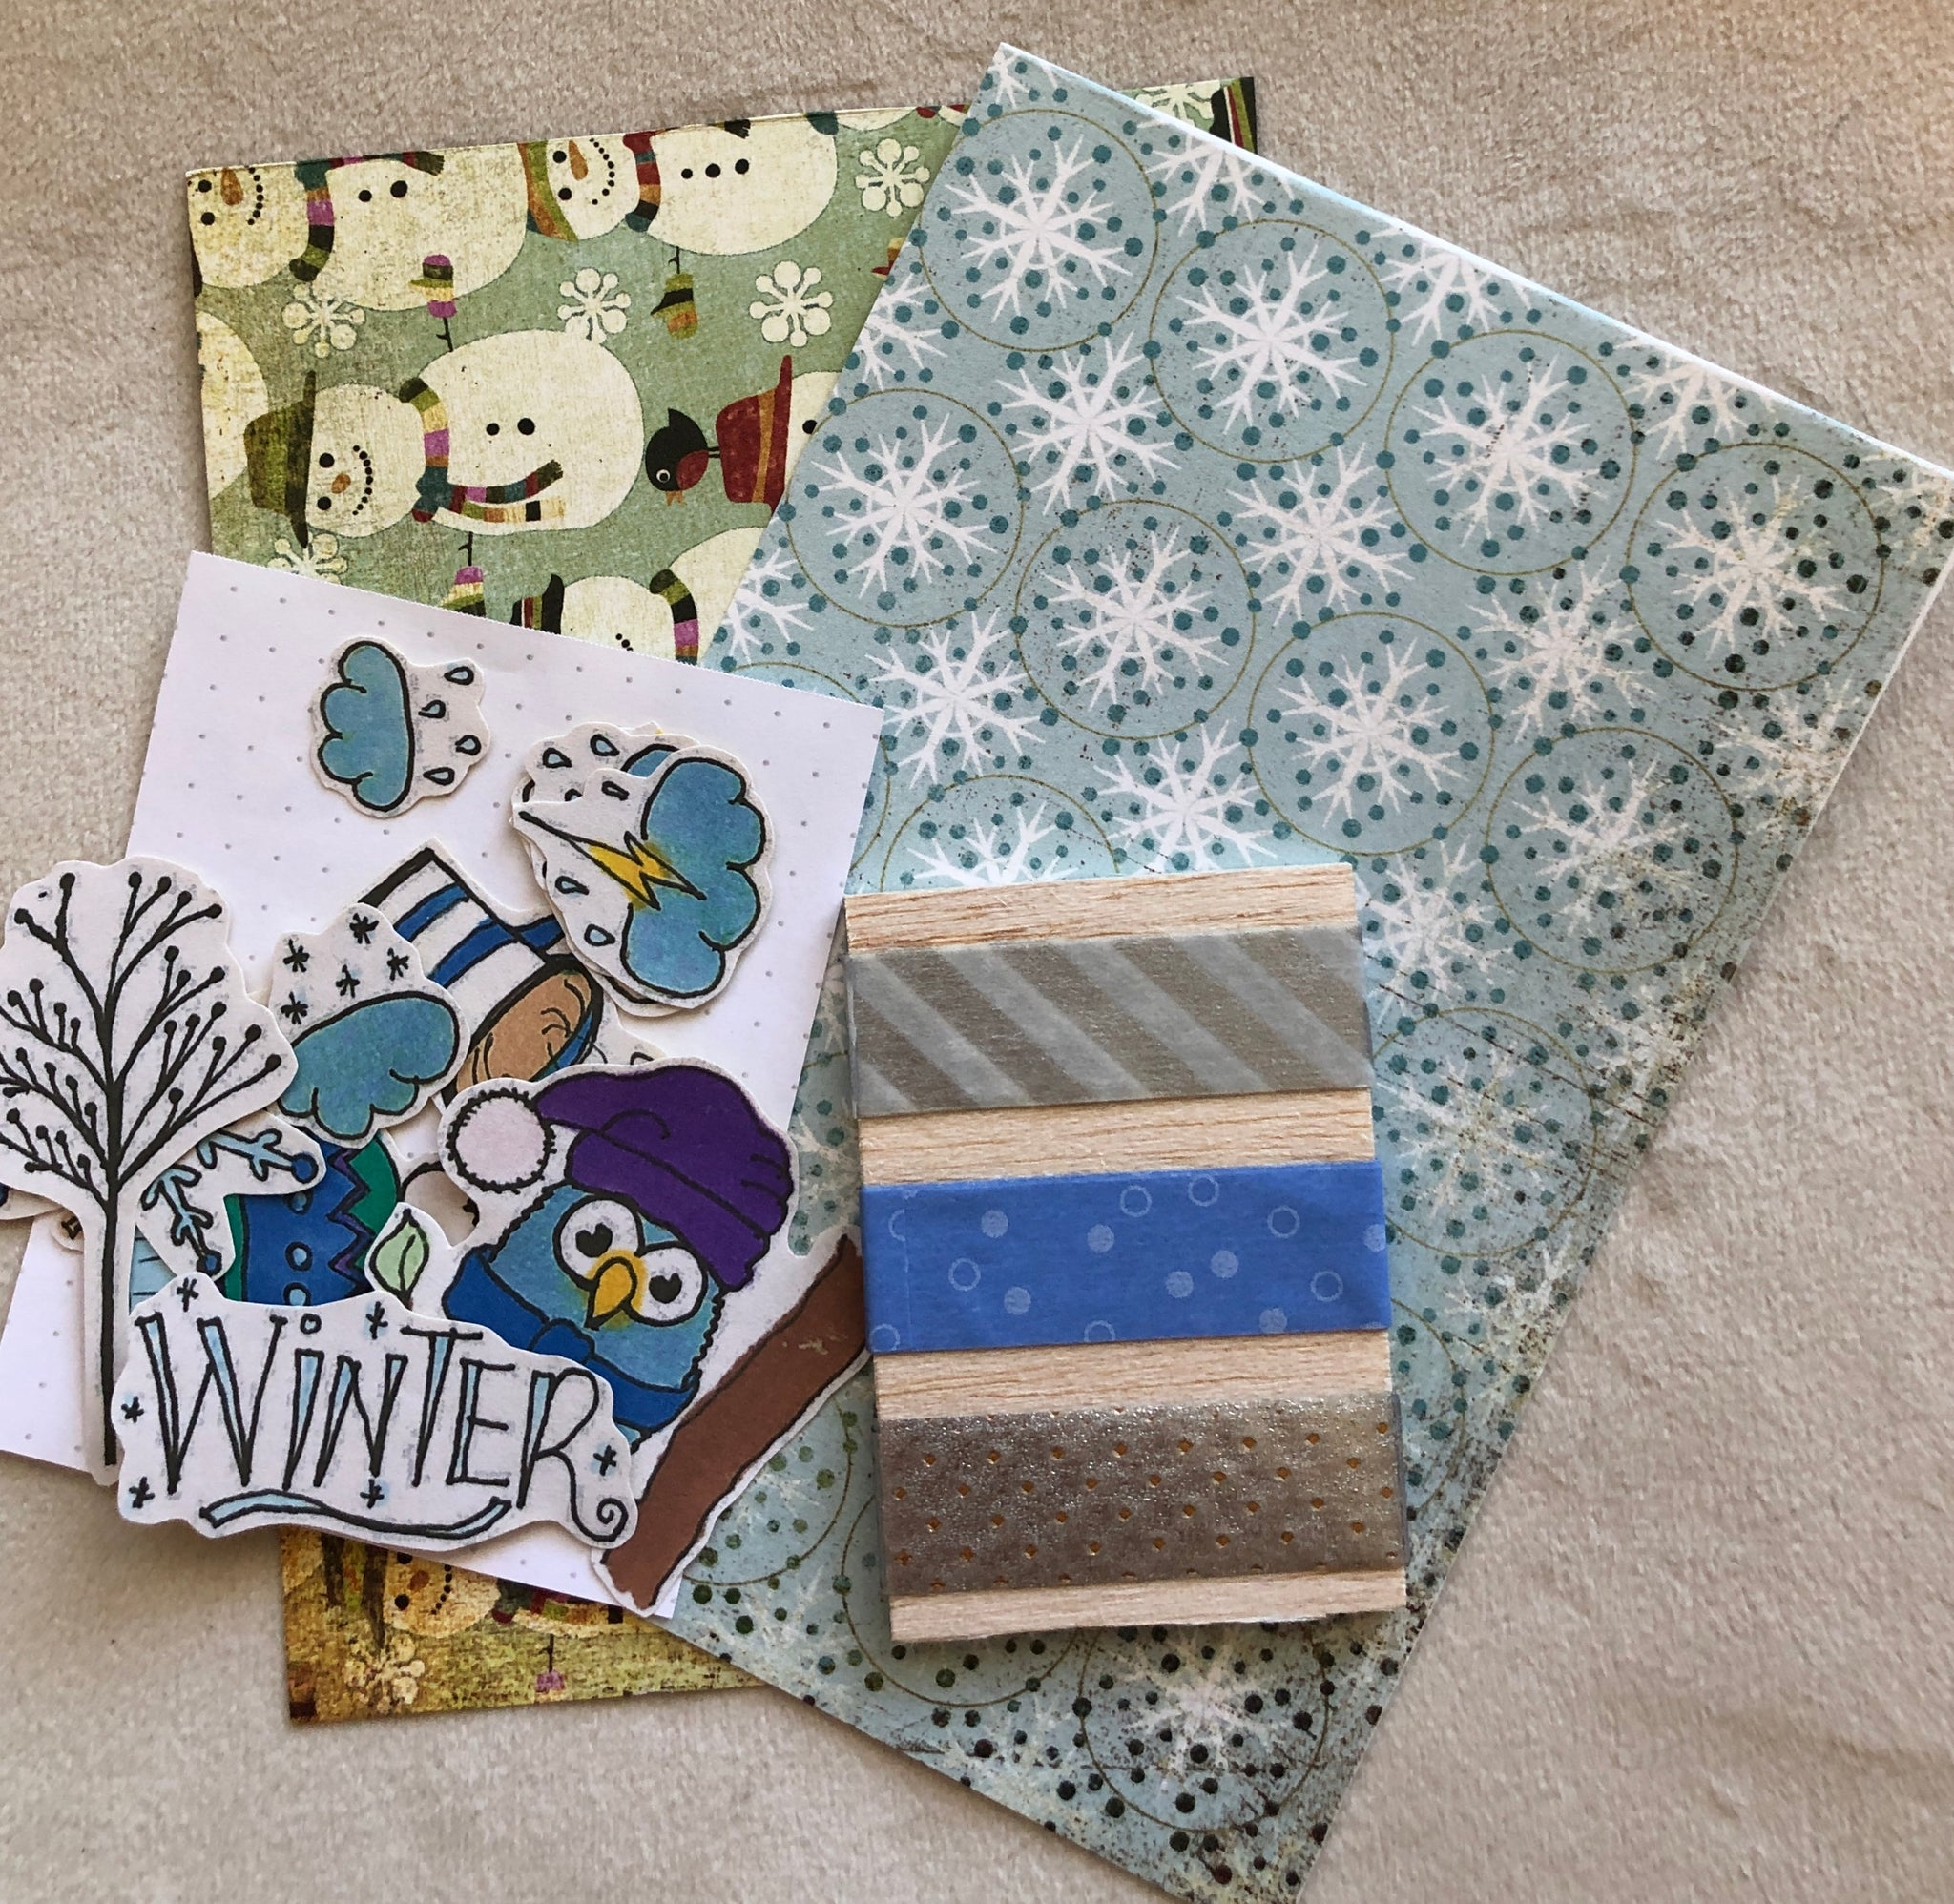 H. Sticker Journal Kit - Winter